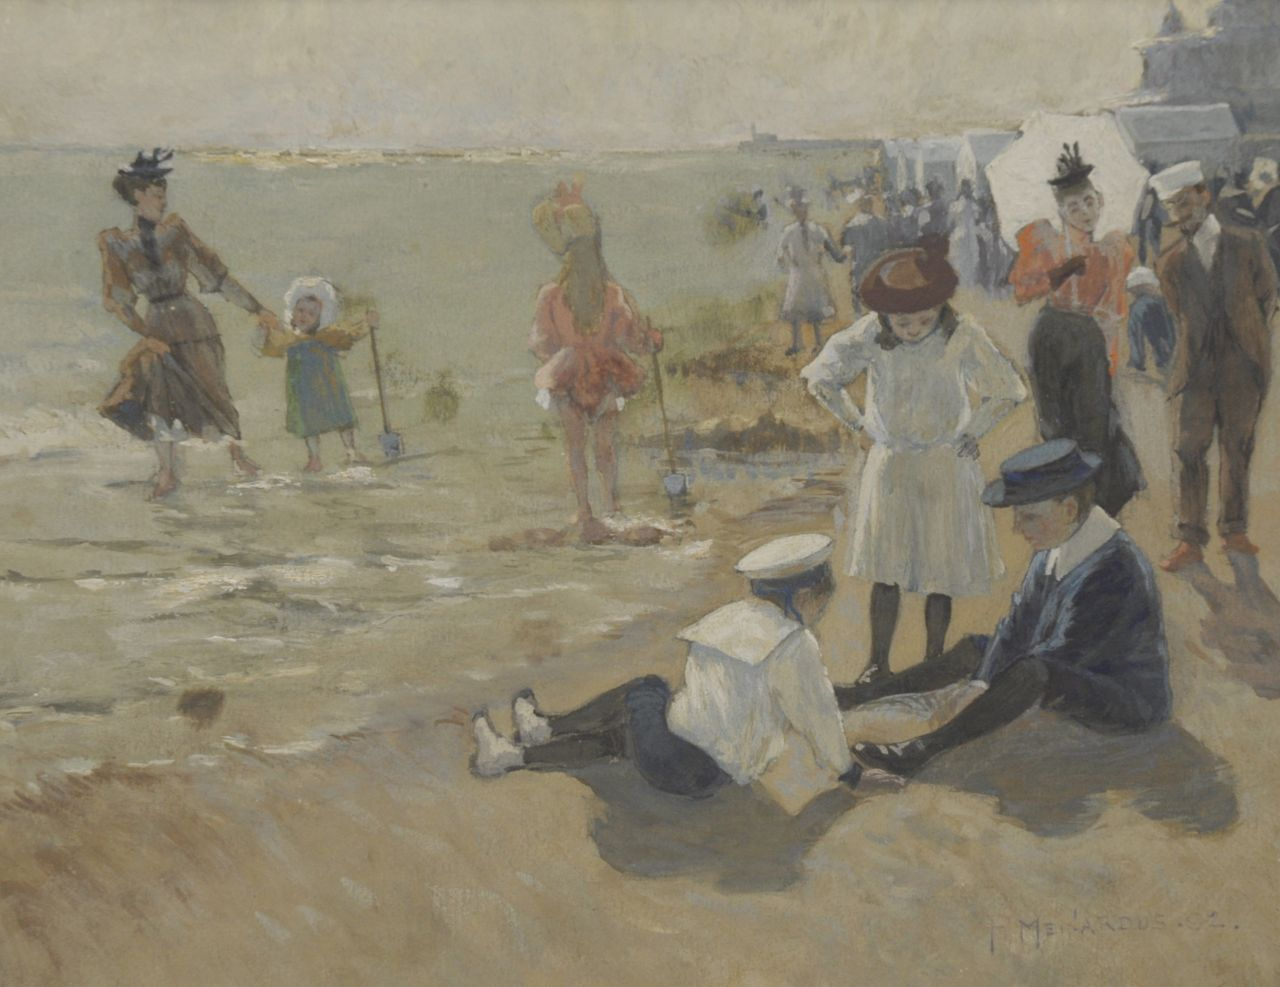 P. Meinardus | At the beach of Scheveningen, gouache on paper, 20.1 x 25.8 cm, signed l.r. and dated '92